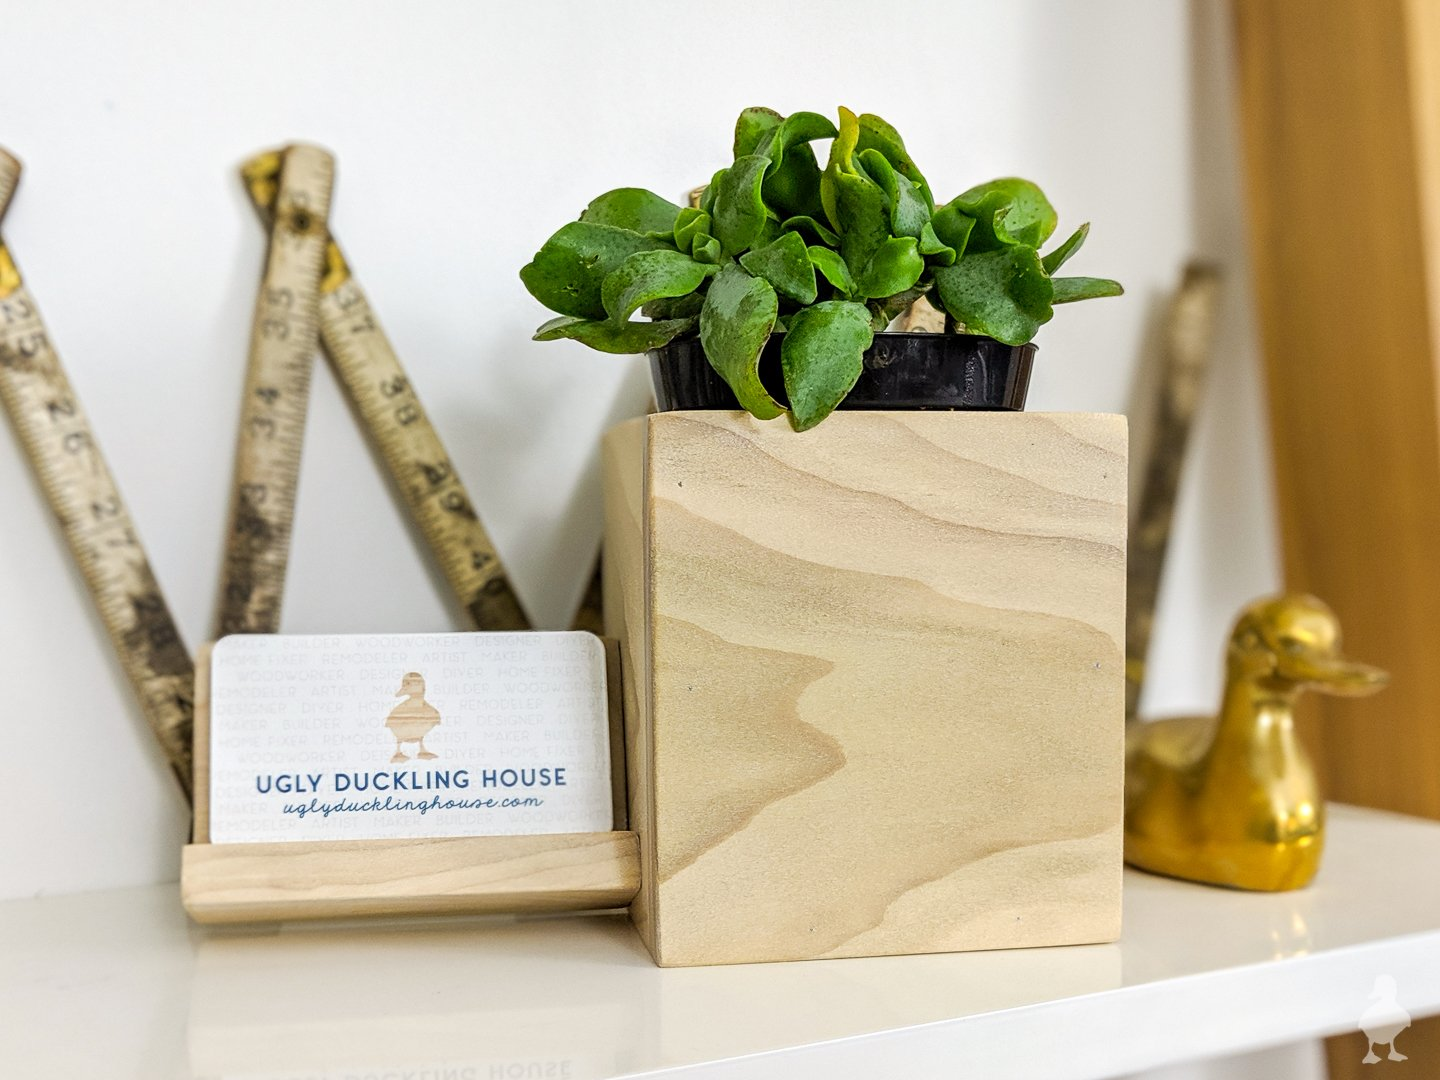 biz card holder with succulent planter combined